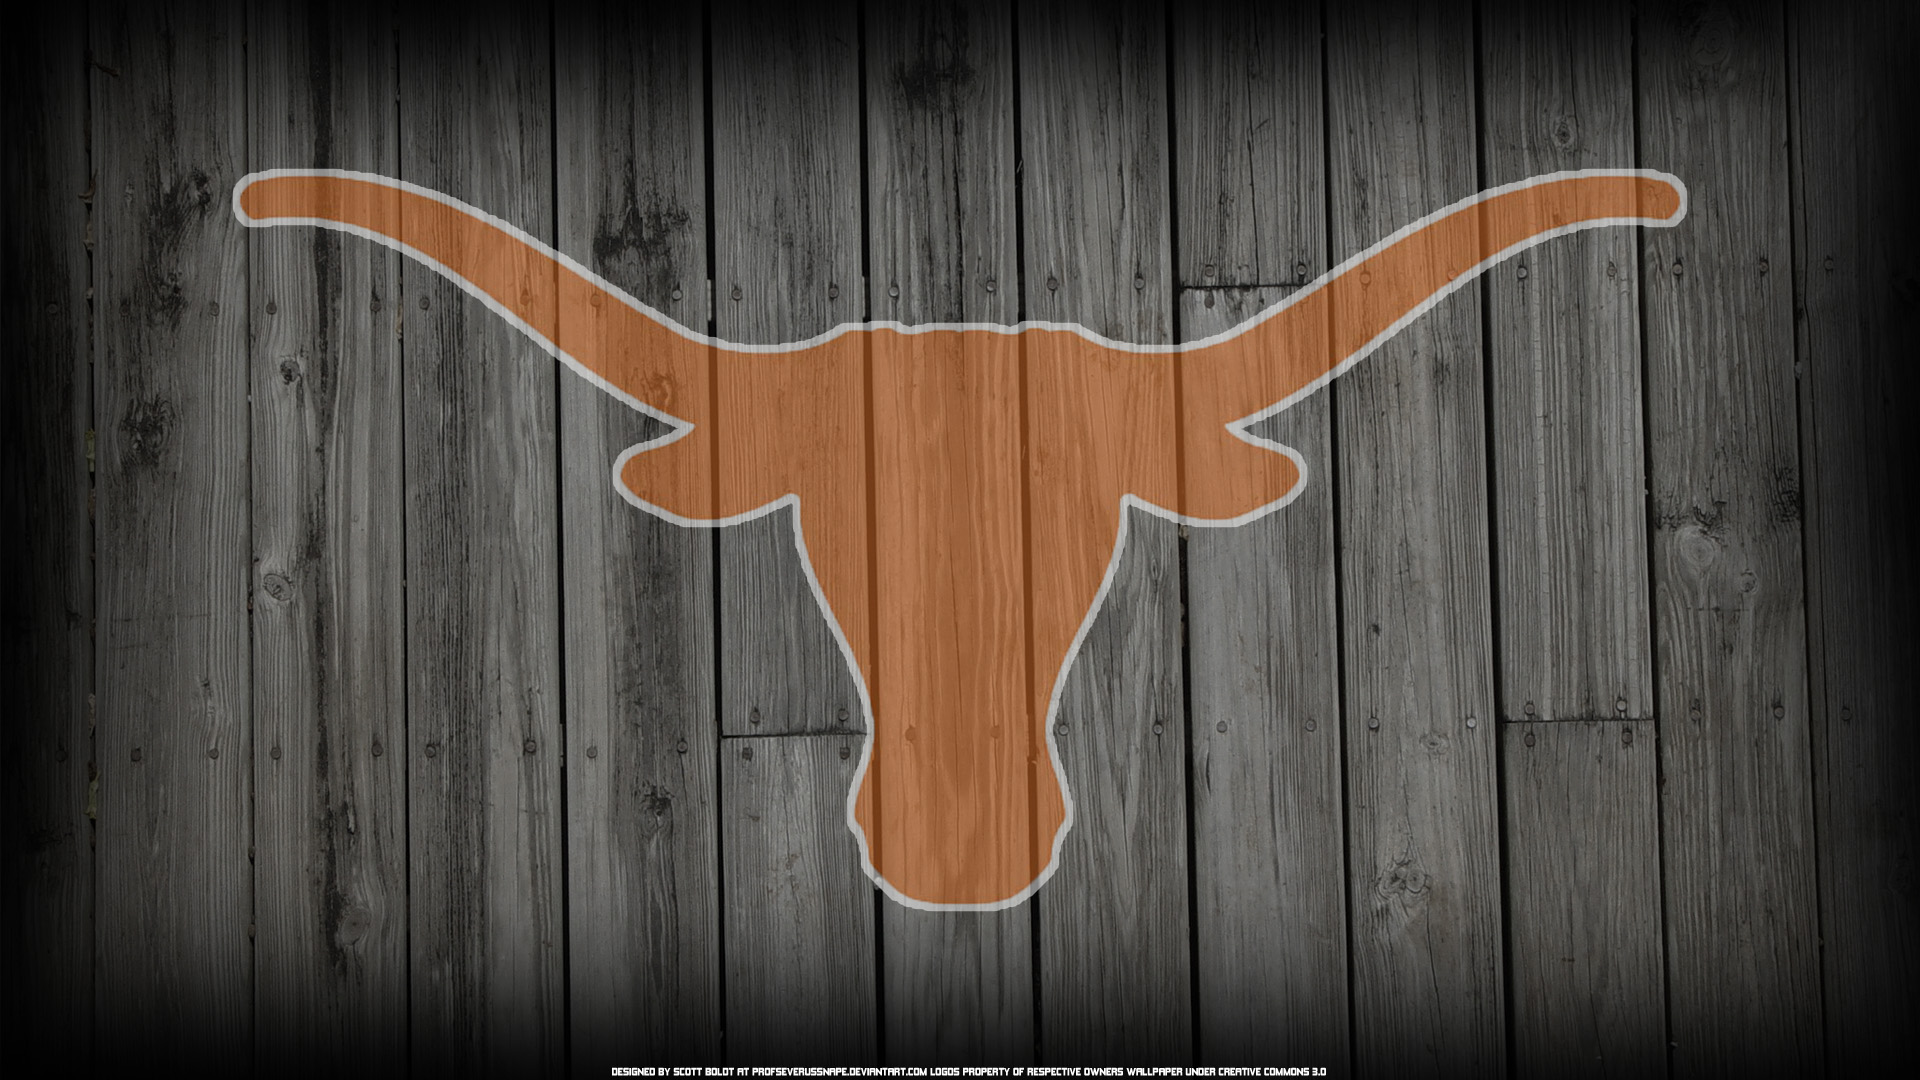 Texas Longhorns Logo on Wood Background by ProfSeverusSnape 1920x1080